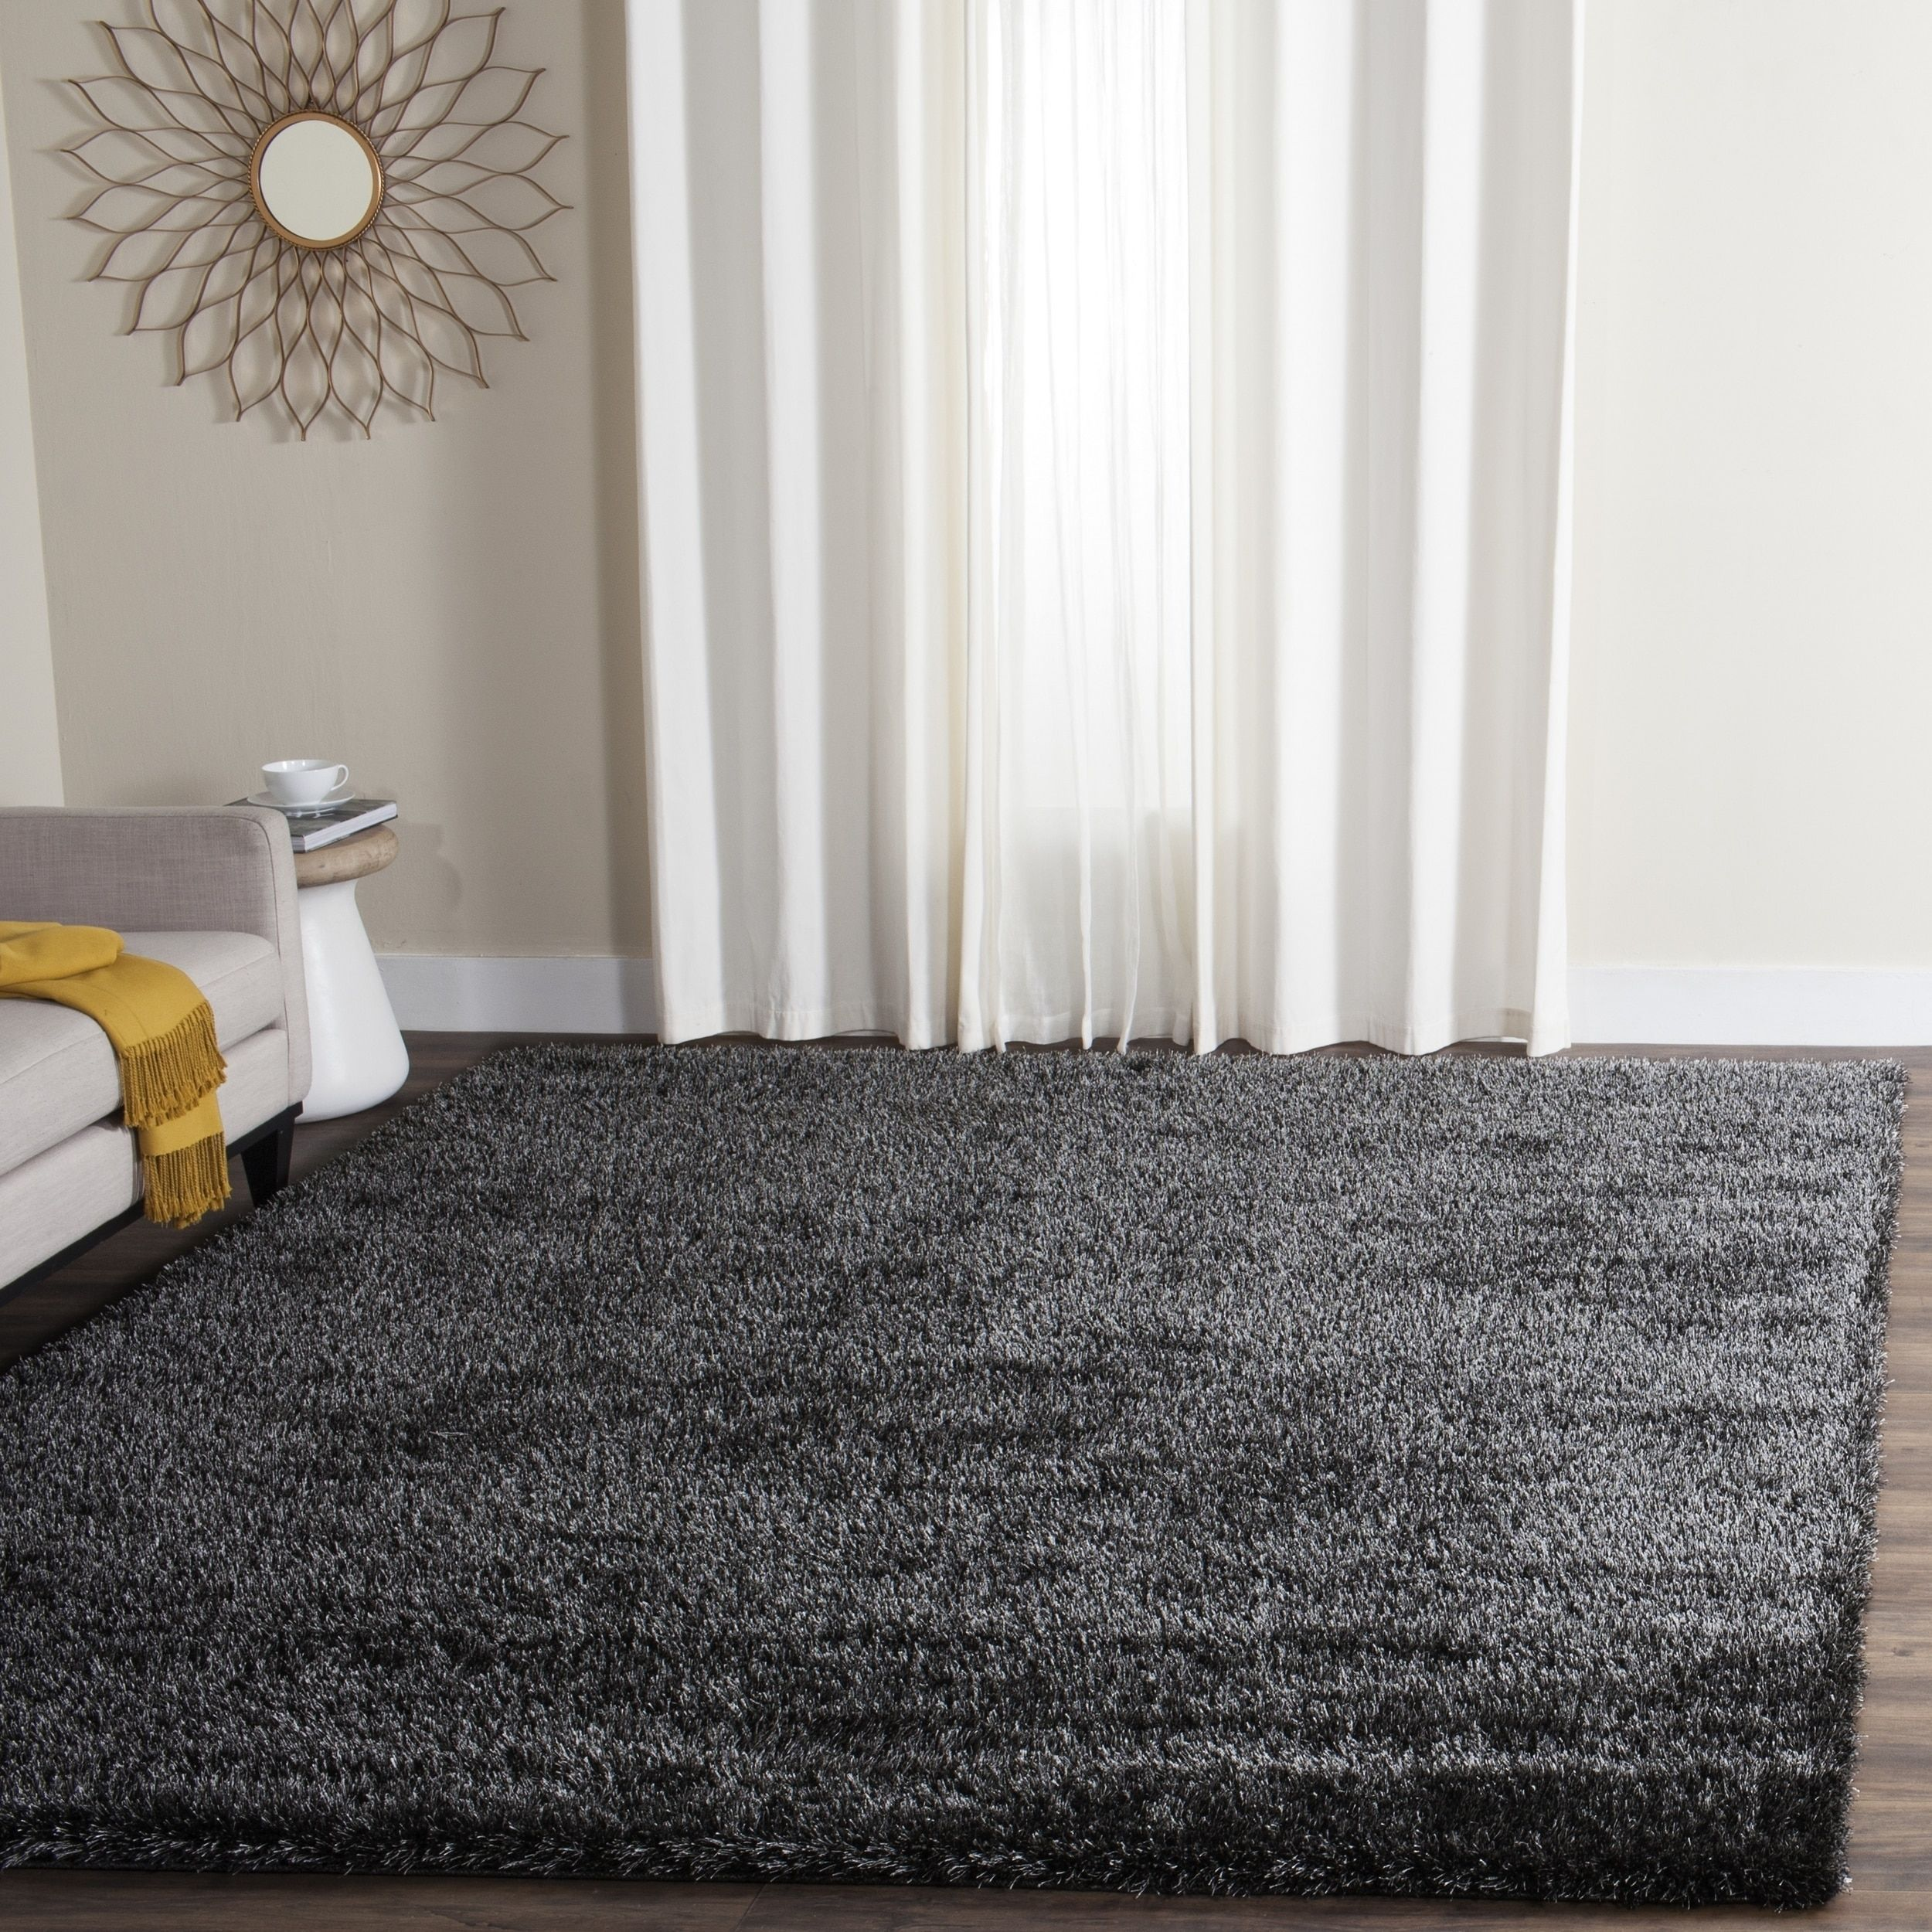 Online Ping Bedding Furniture Electronics Jewelry Clothing More Indoor Rugsplusharea Rugscharlottepolyester